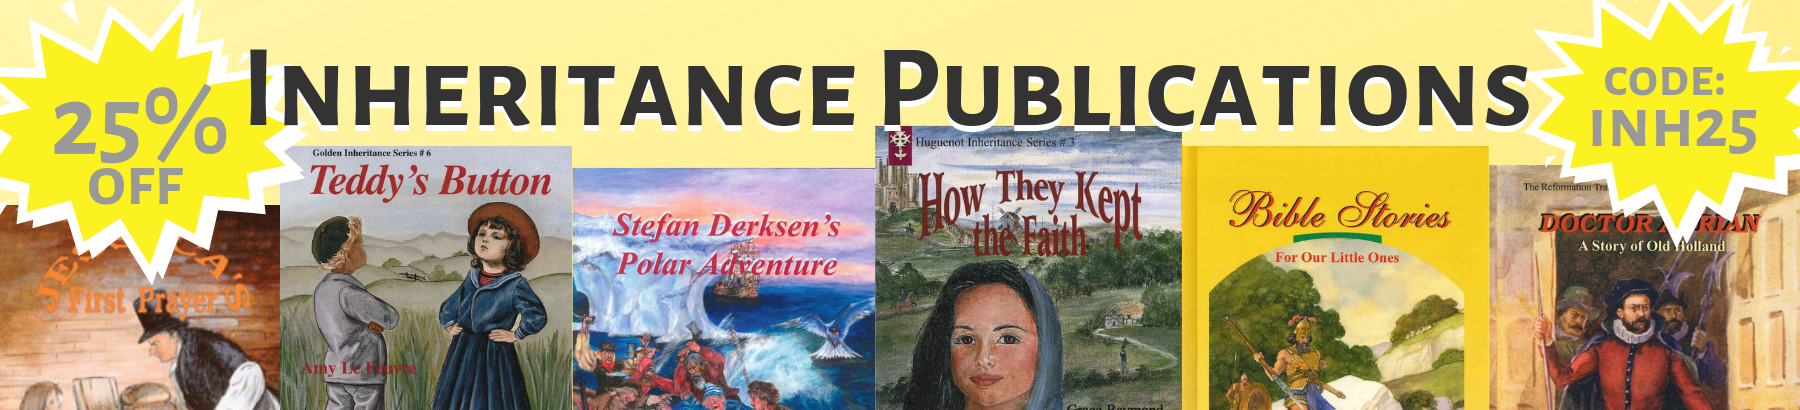 25% off all Inheritance Publications